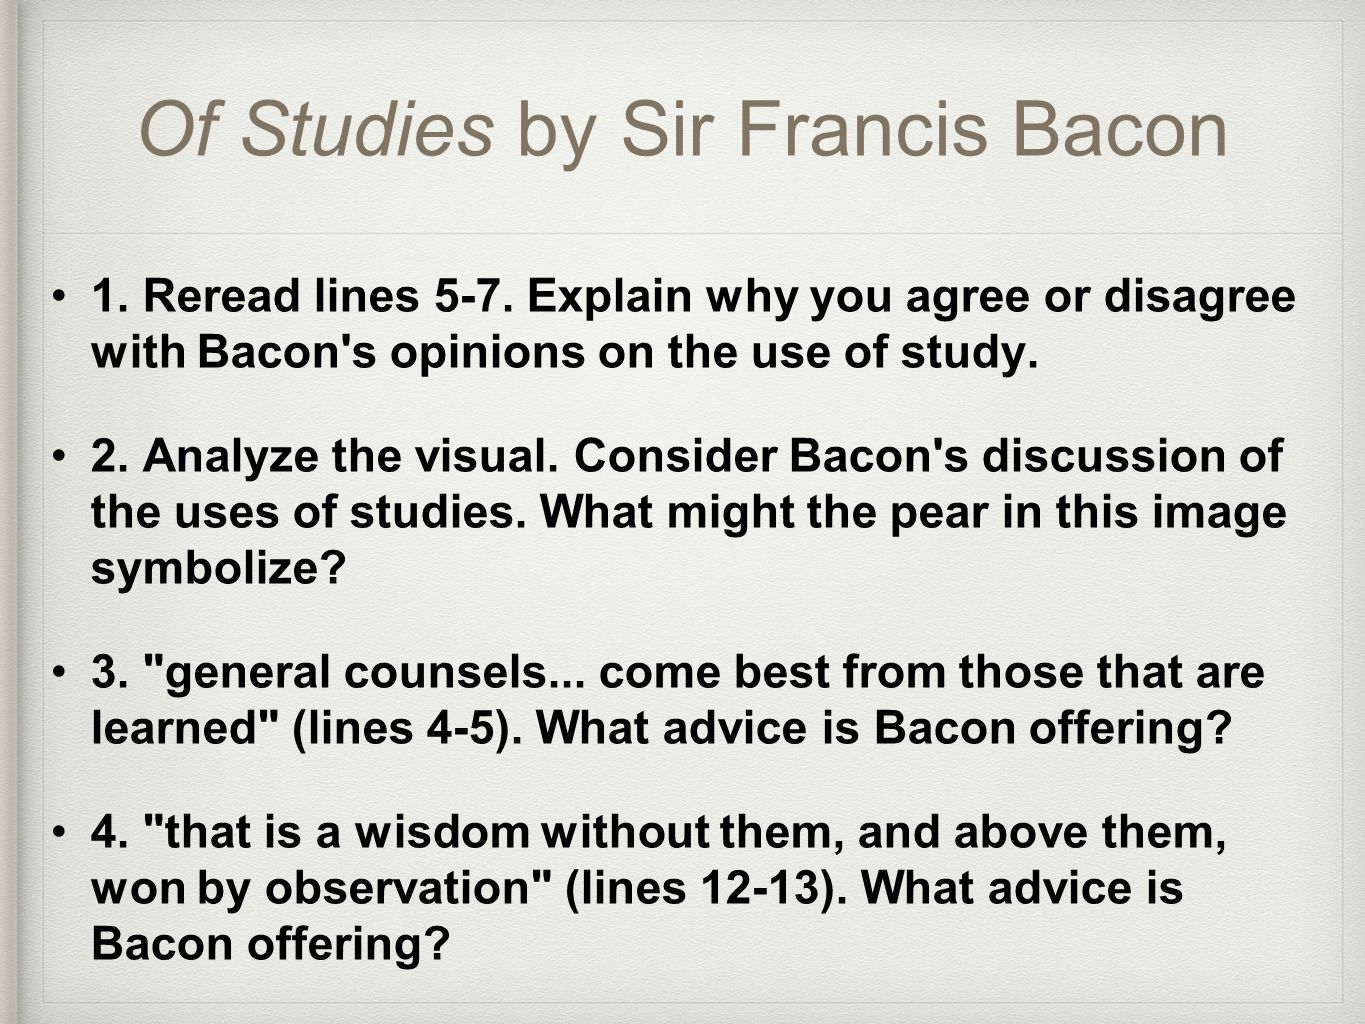 francis bacons essay on friendship Get an answer for 'critical appreciation of the essay-of friendship by francis bacon ' and find homework help for other francis bacon questions at enotes.